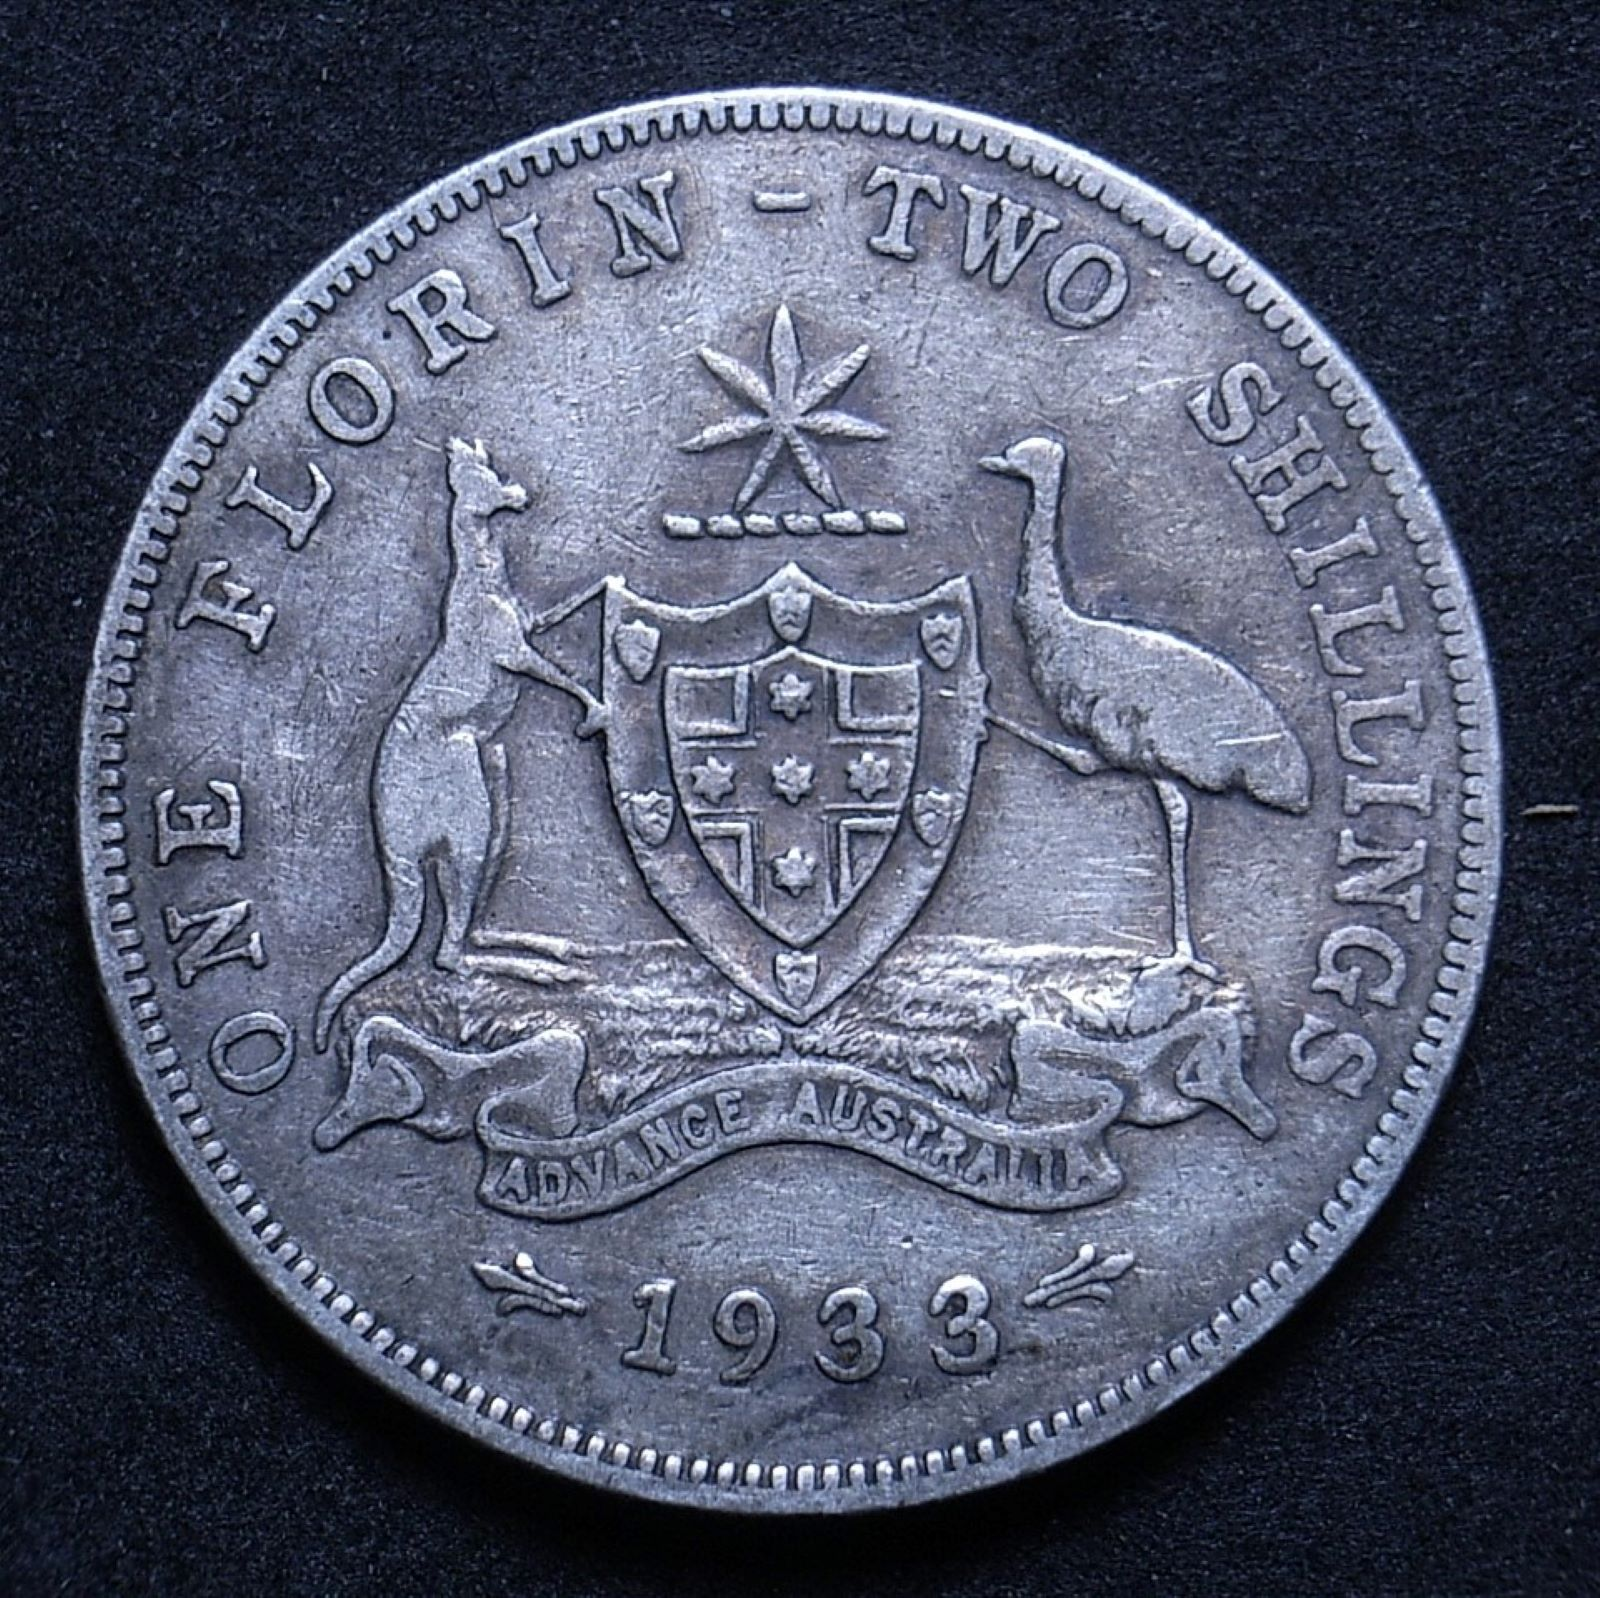 Close up of 1933 florin reverse showing the coin's detail